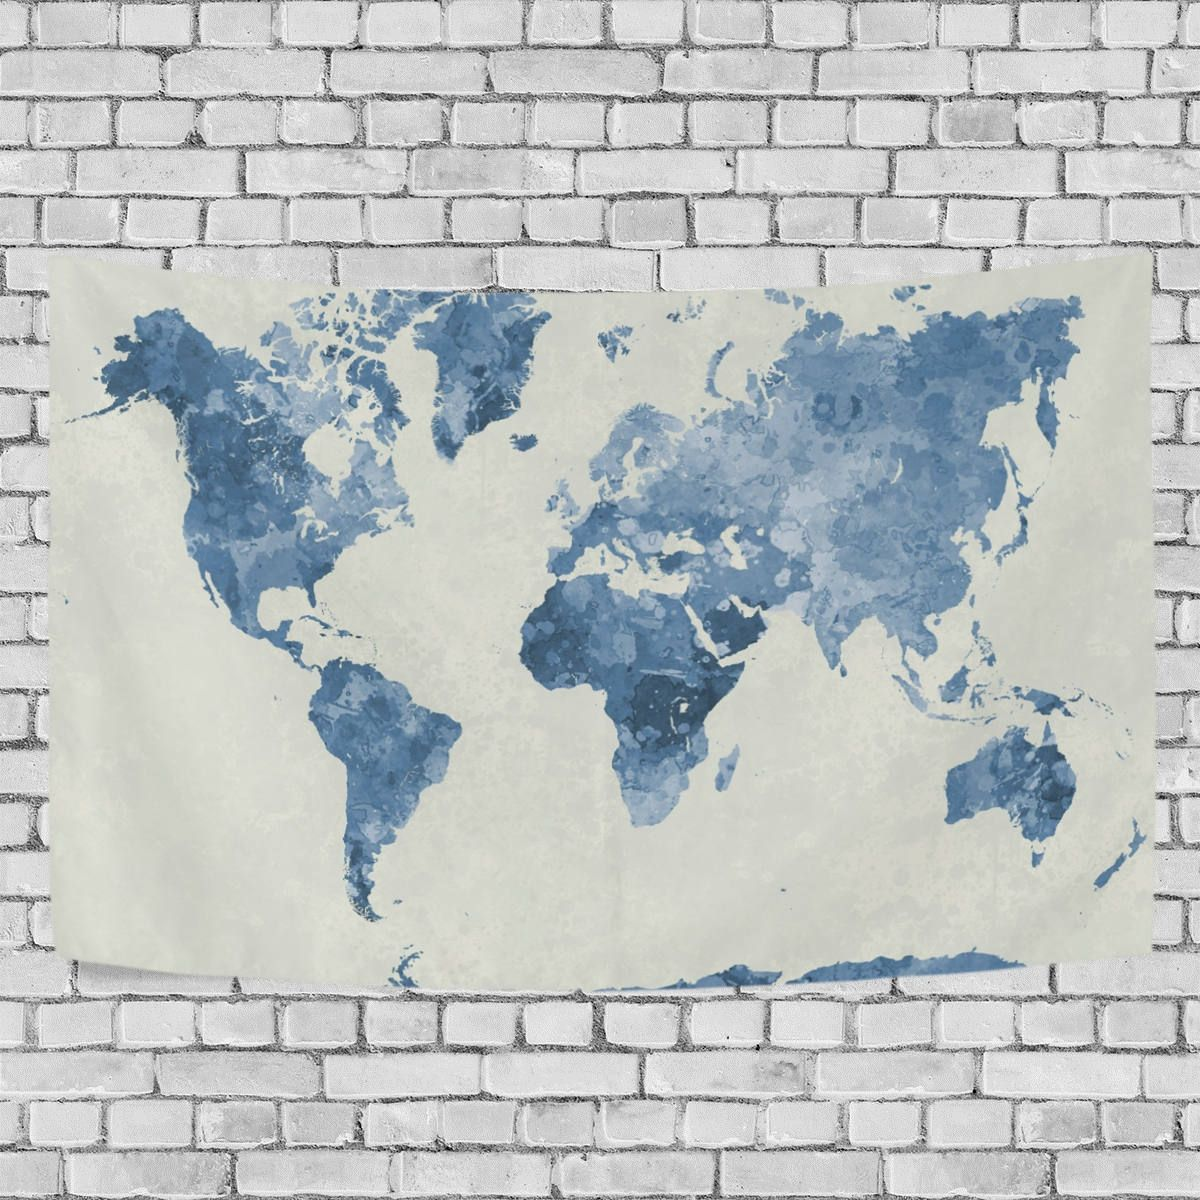 Blue watercolor world map tapestry abstract splatter painting wall blue watercolor world map tapestry abstract splatter painting wall hanging art for living room bedroom dorm decor gumiabroncs Choice Image